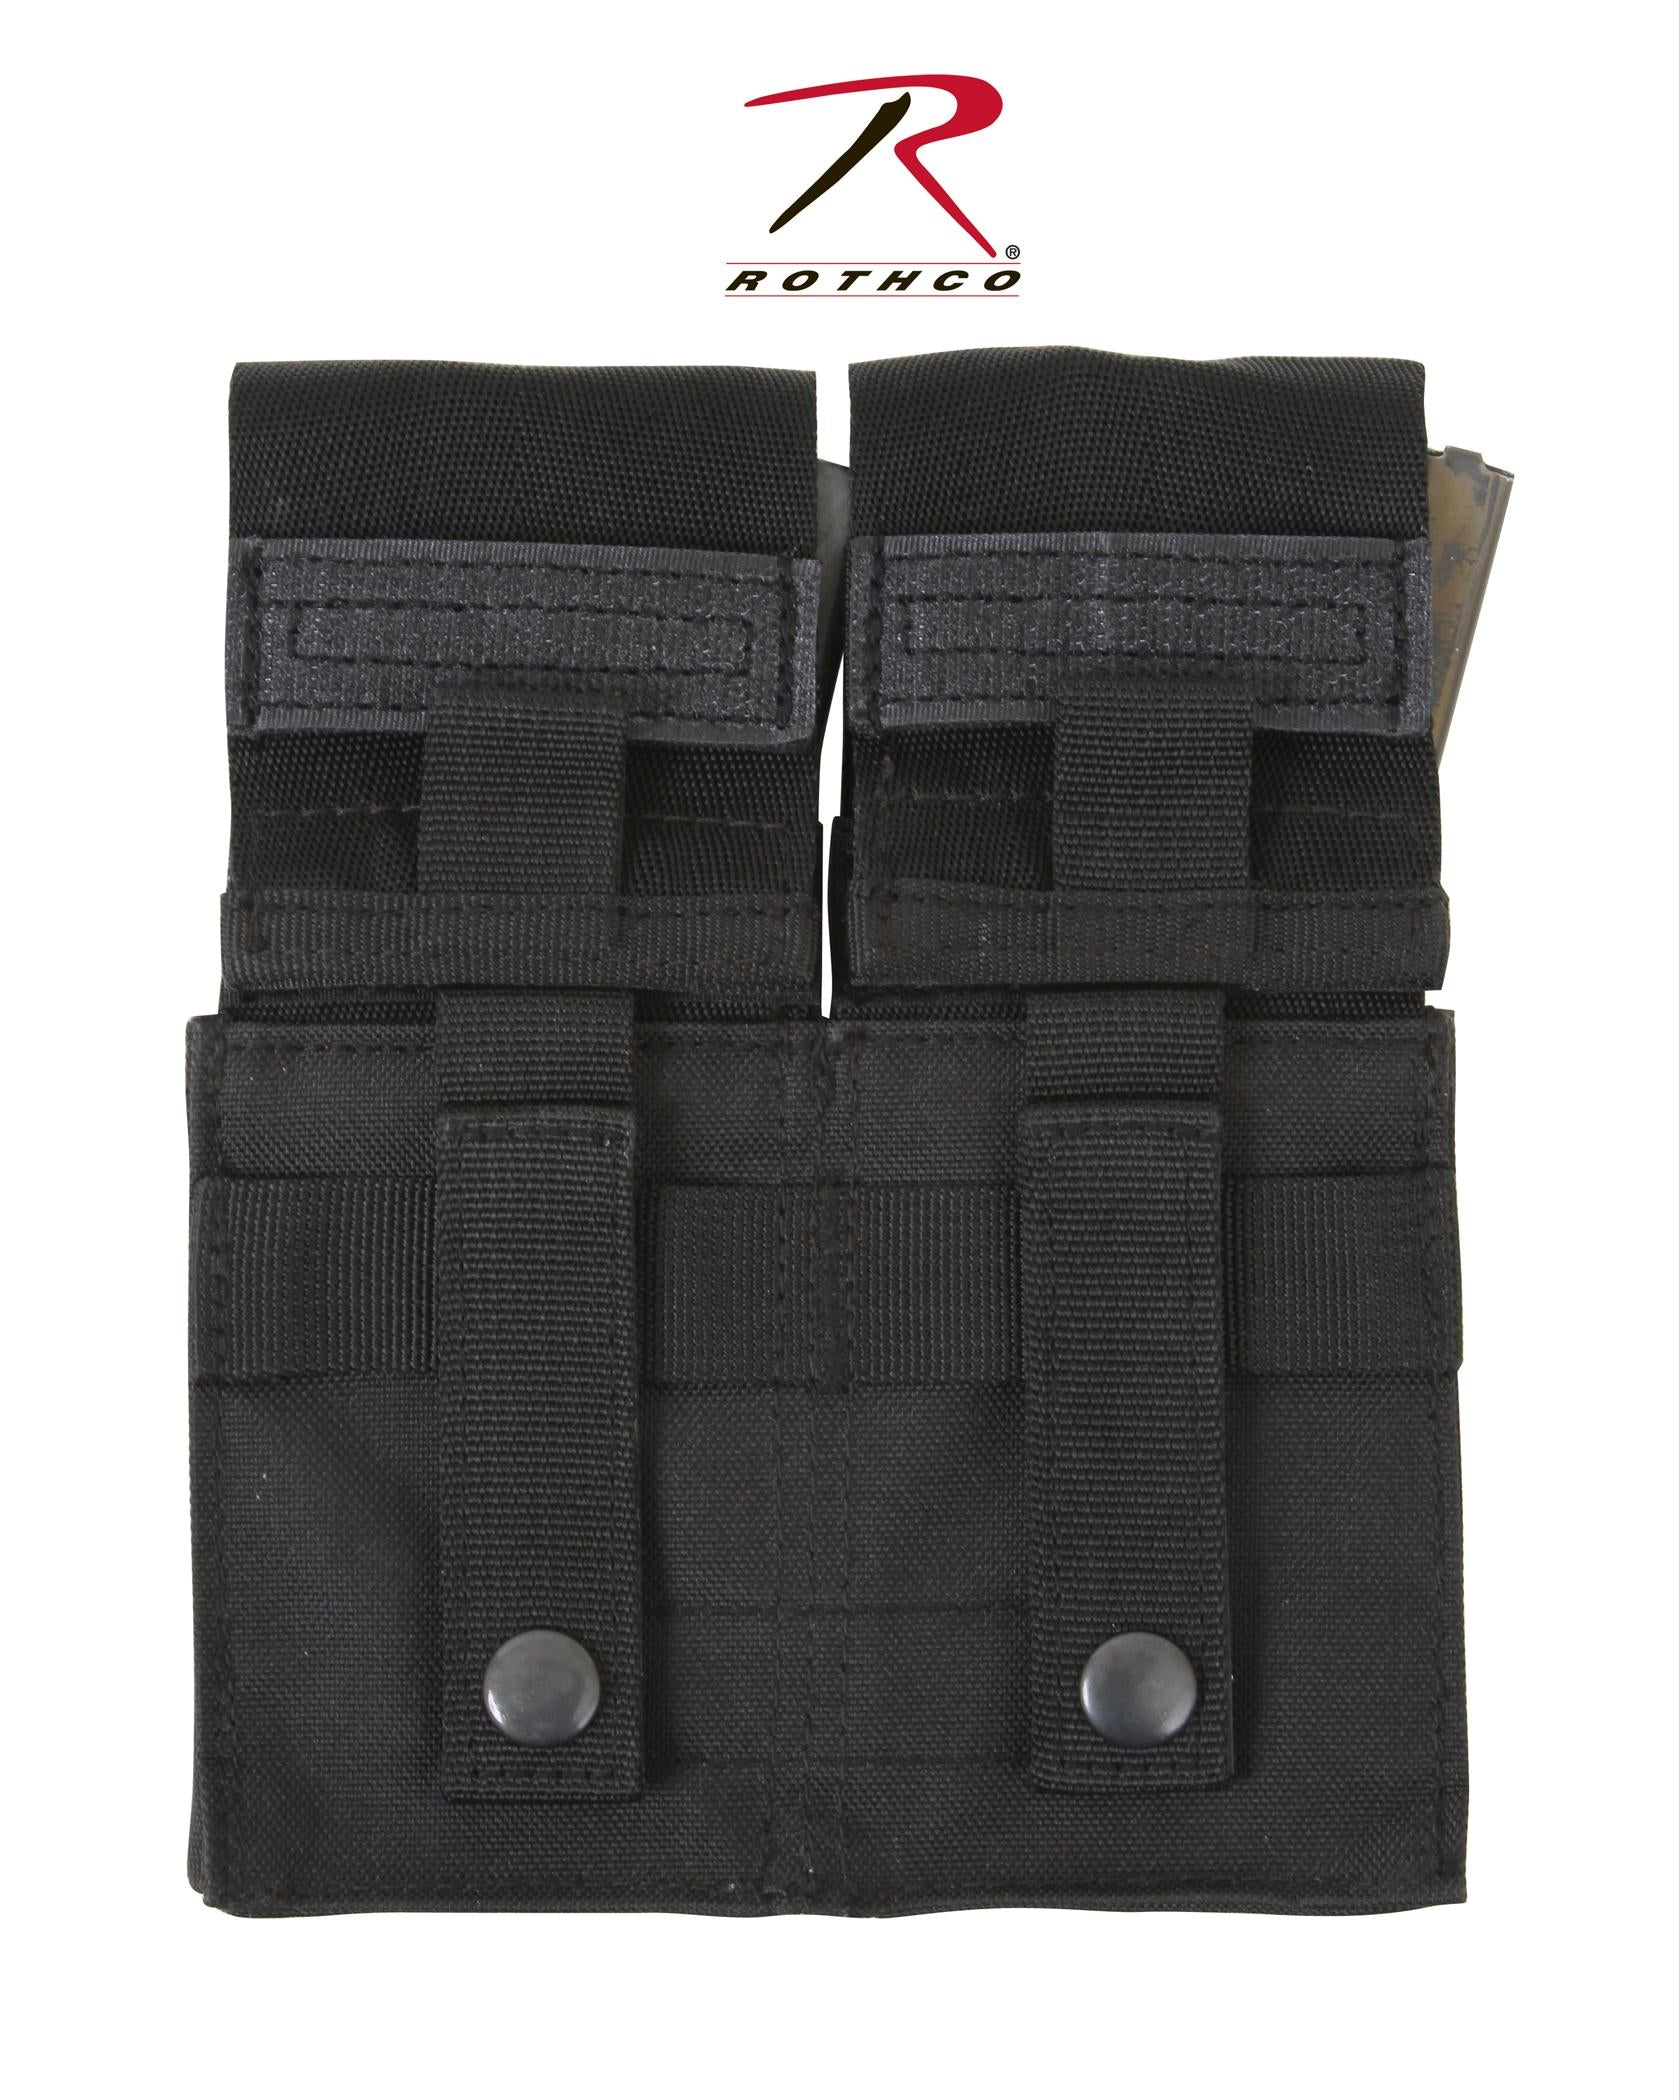 Rothco MOLLE Double M16 Pouch w/ Inserts - Black